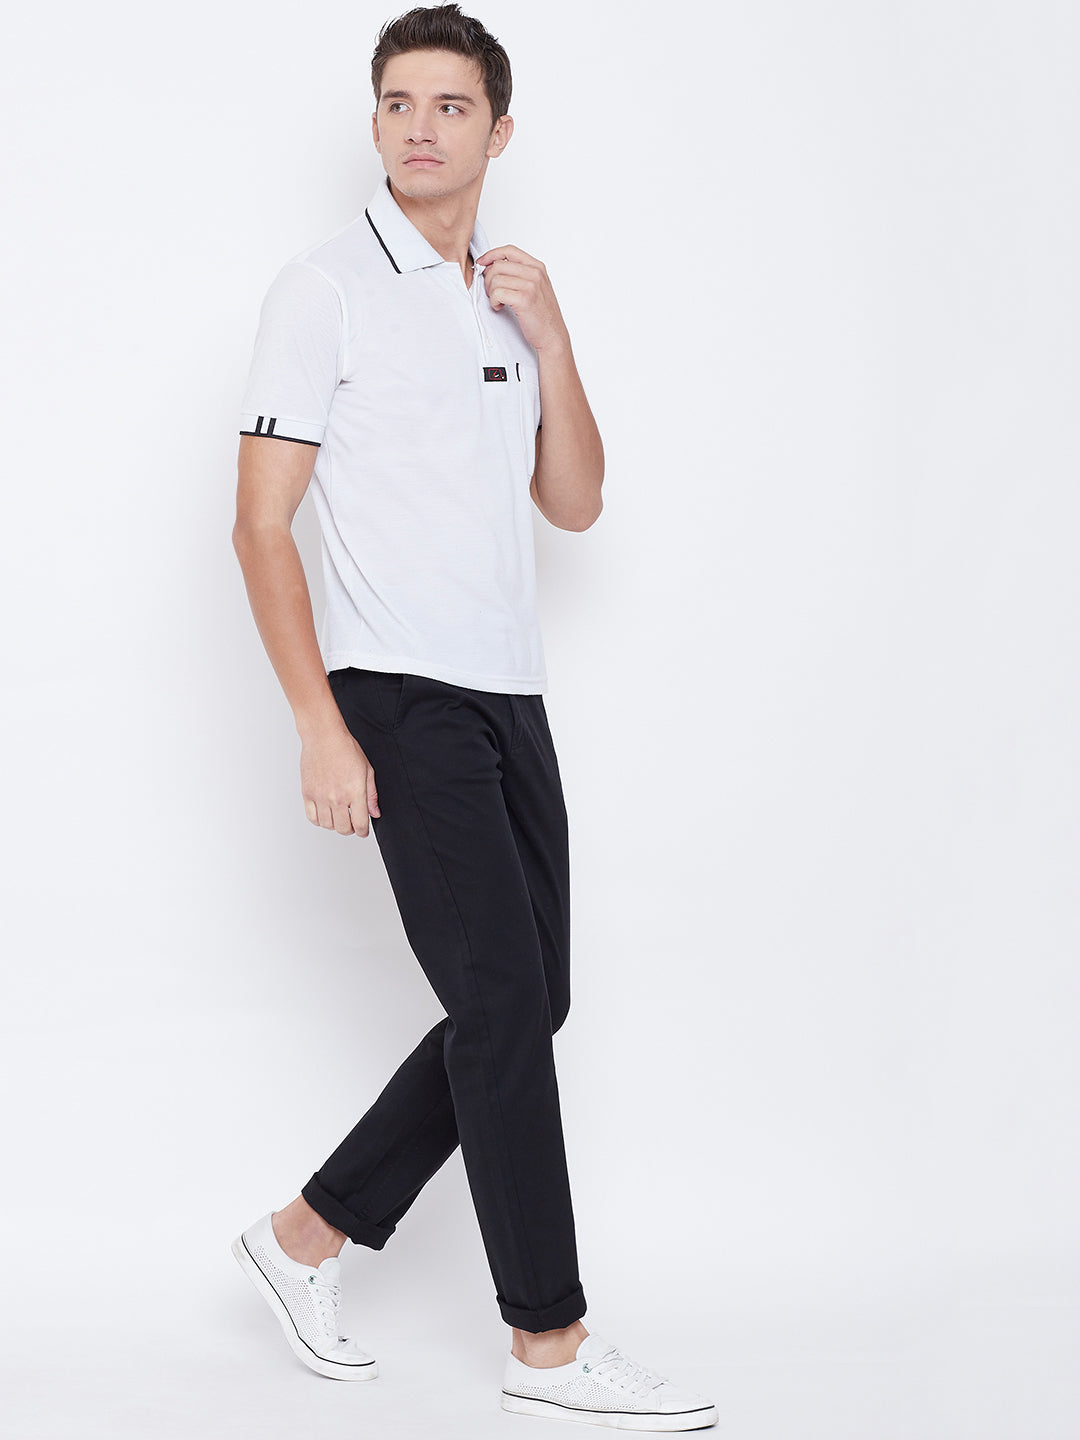 Octave Apparels Black Pant for Men